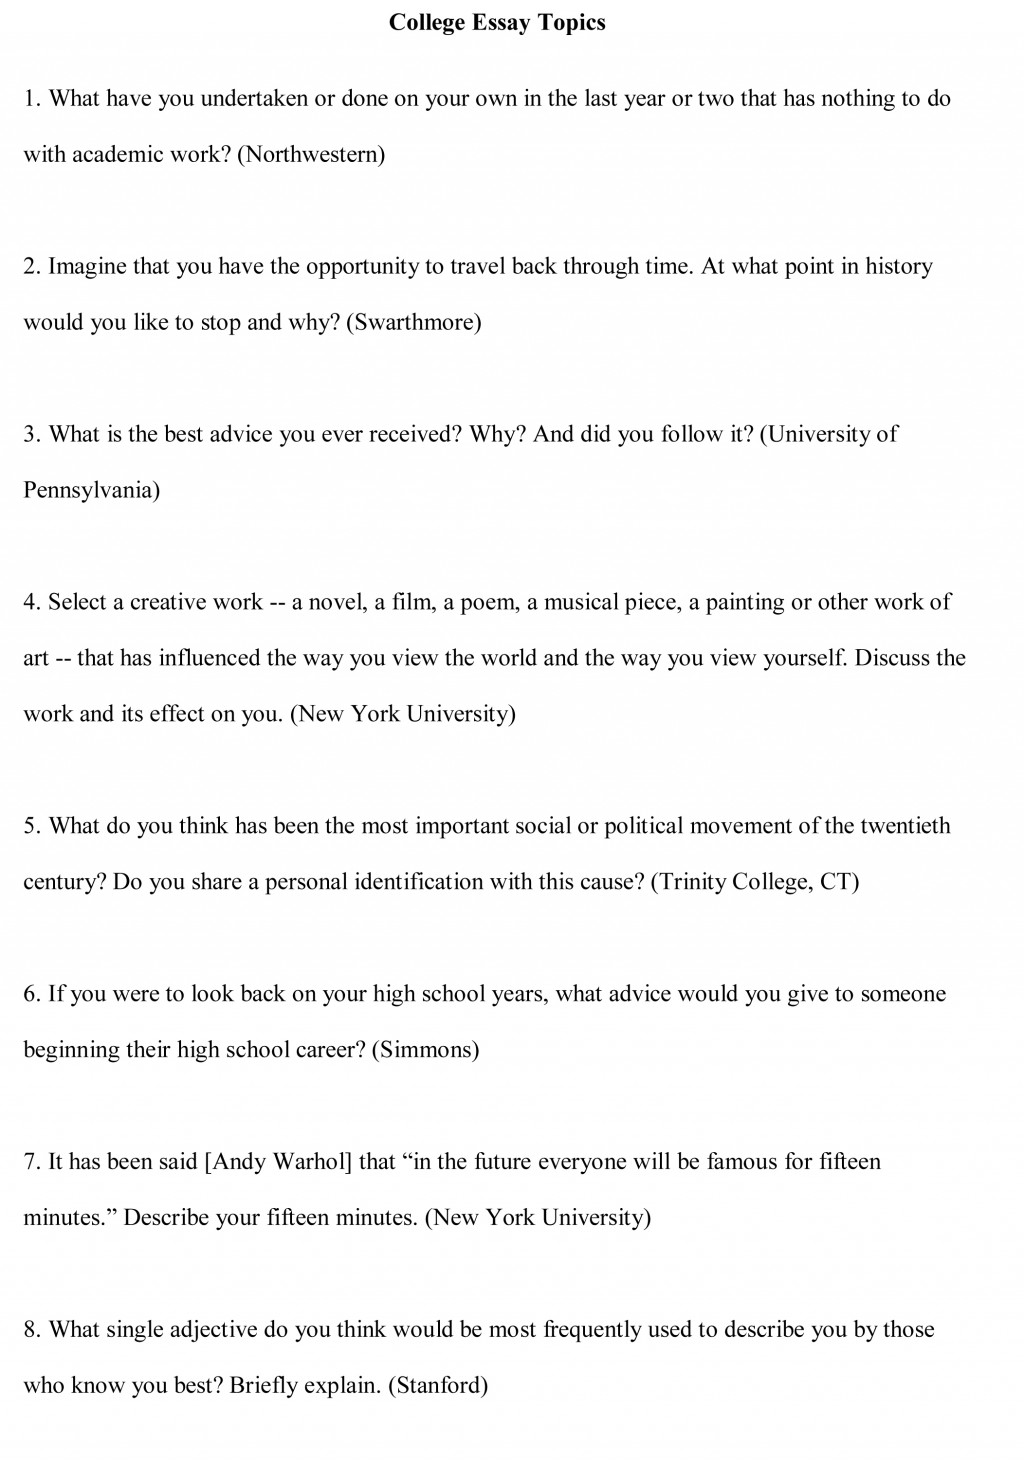 018 Essay Example College Topics Free Sample1 Wonderful Persuasive Argumentative Students Easy Level Speech 2018 Large